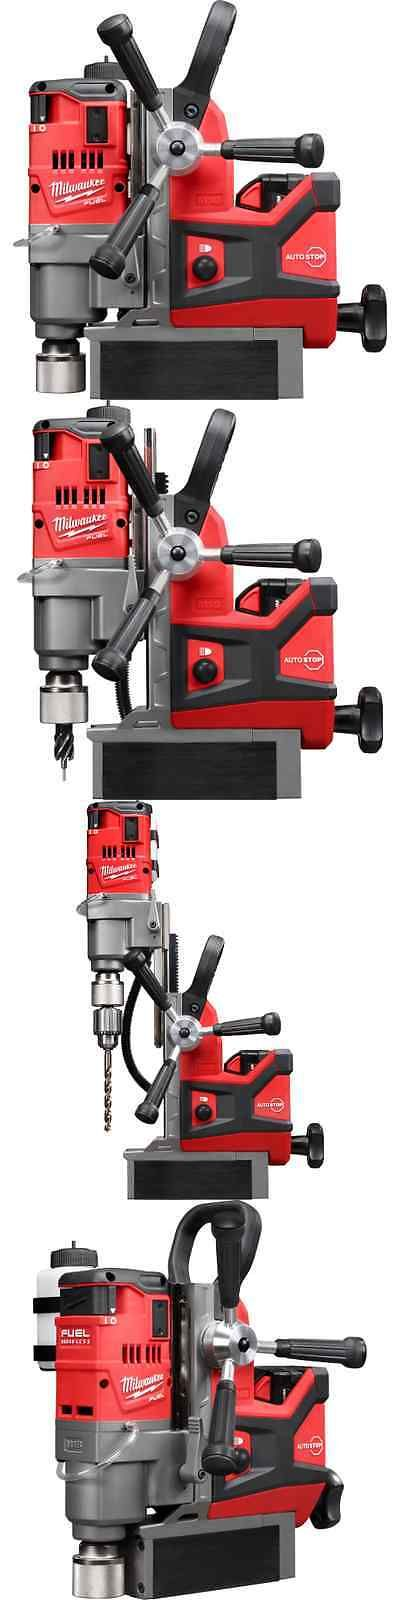 Combination Sets 177000: New Milwaukee 2787-22 M18 18 Volt Fuel 1 1 2 Magnetic Drill Complete Kit And Case -> BUY IT NOW ONLY: $1300 on eBay!